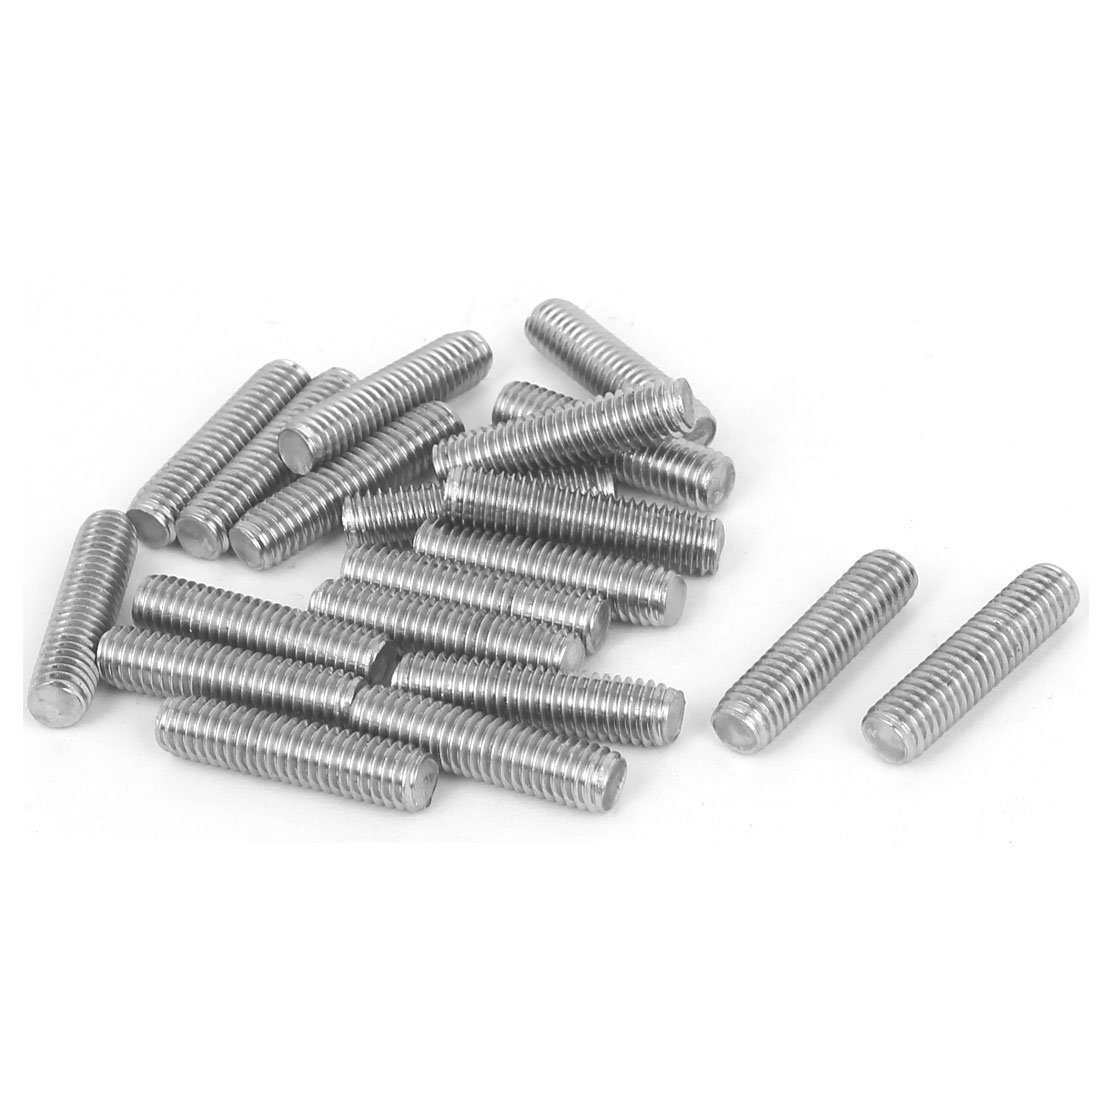 uxcell M6 x 25mm Fully Threaded 304 Stainless Steel Rod Bar Studs Silver Tone 20 Pcs a16071500ux0135